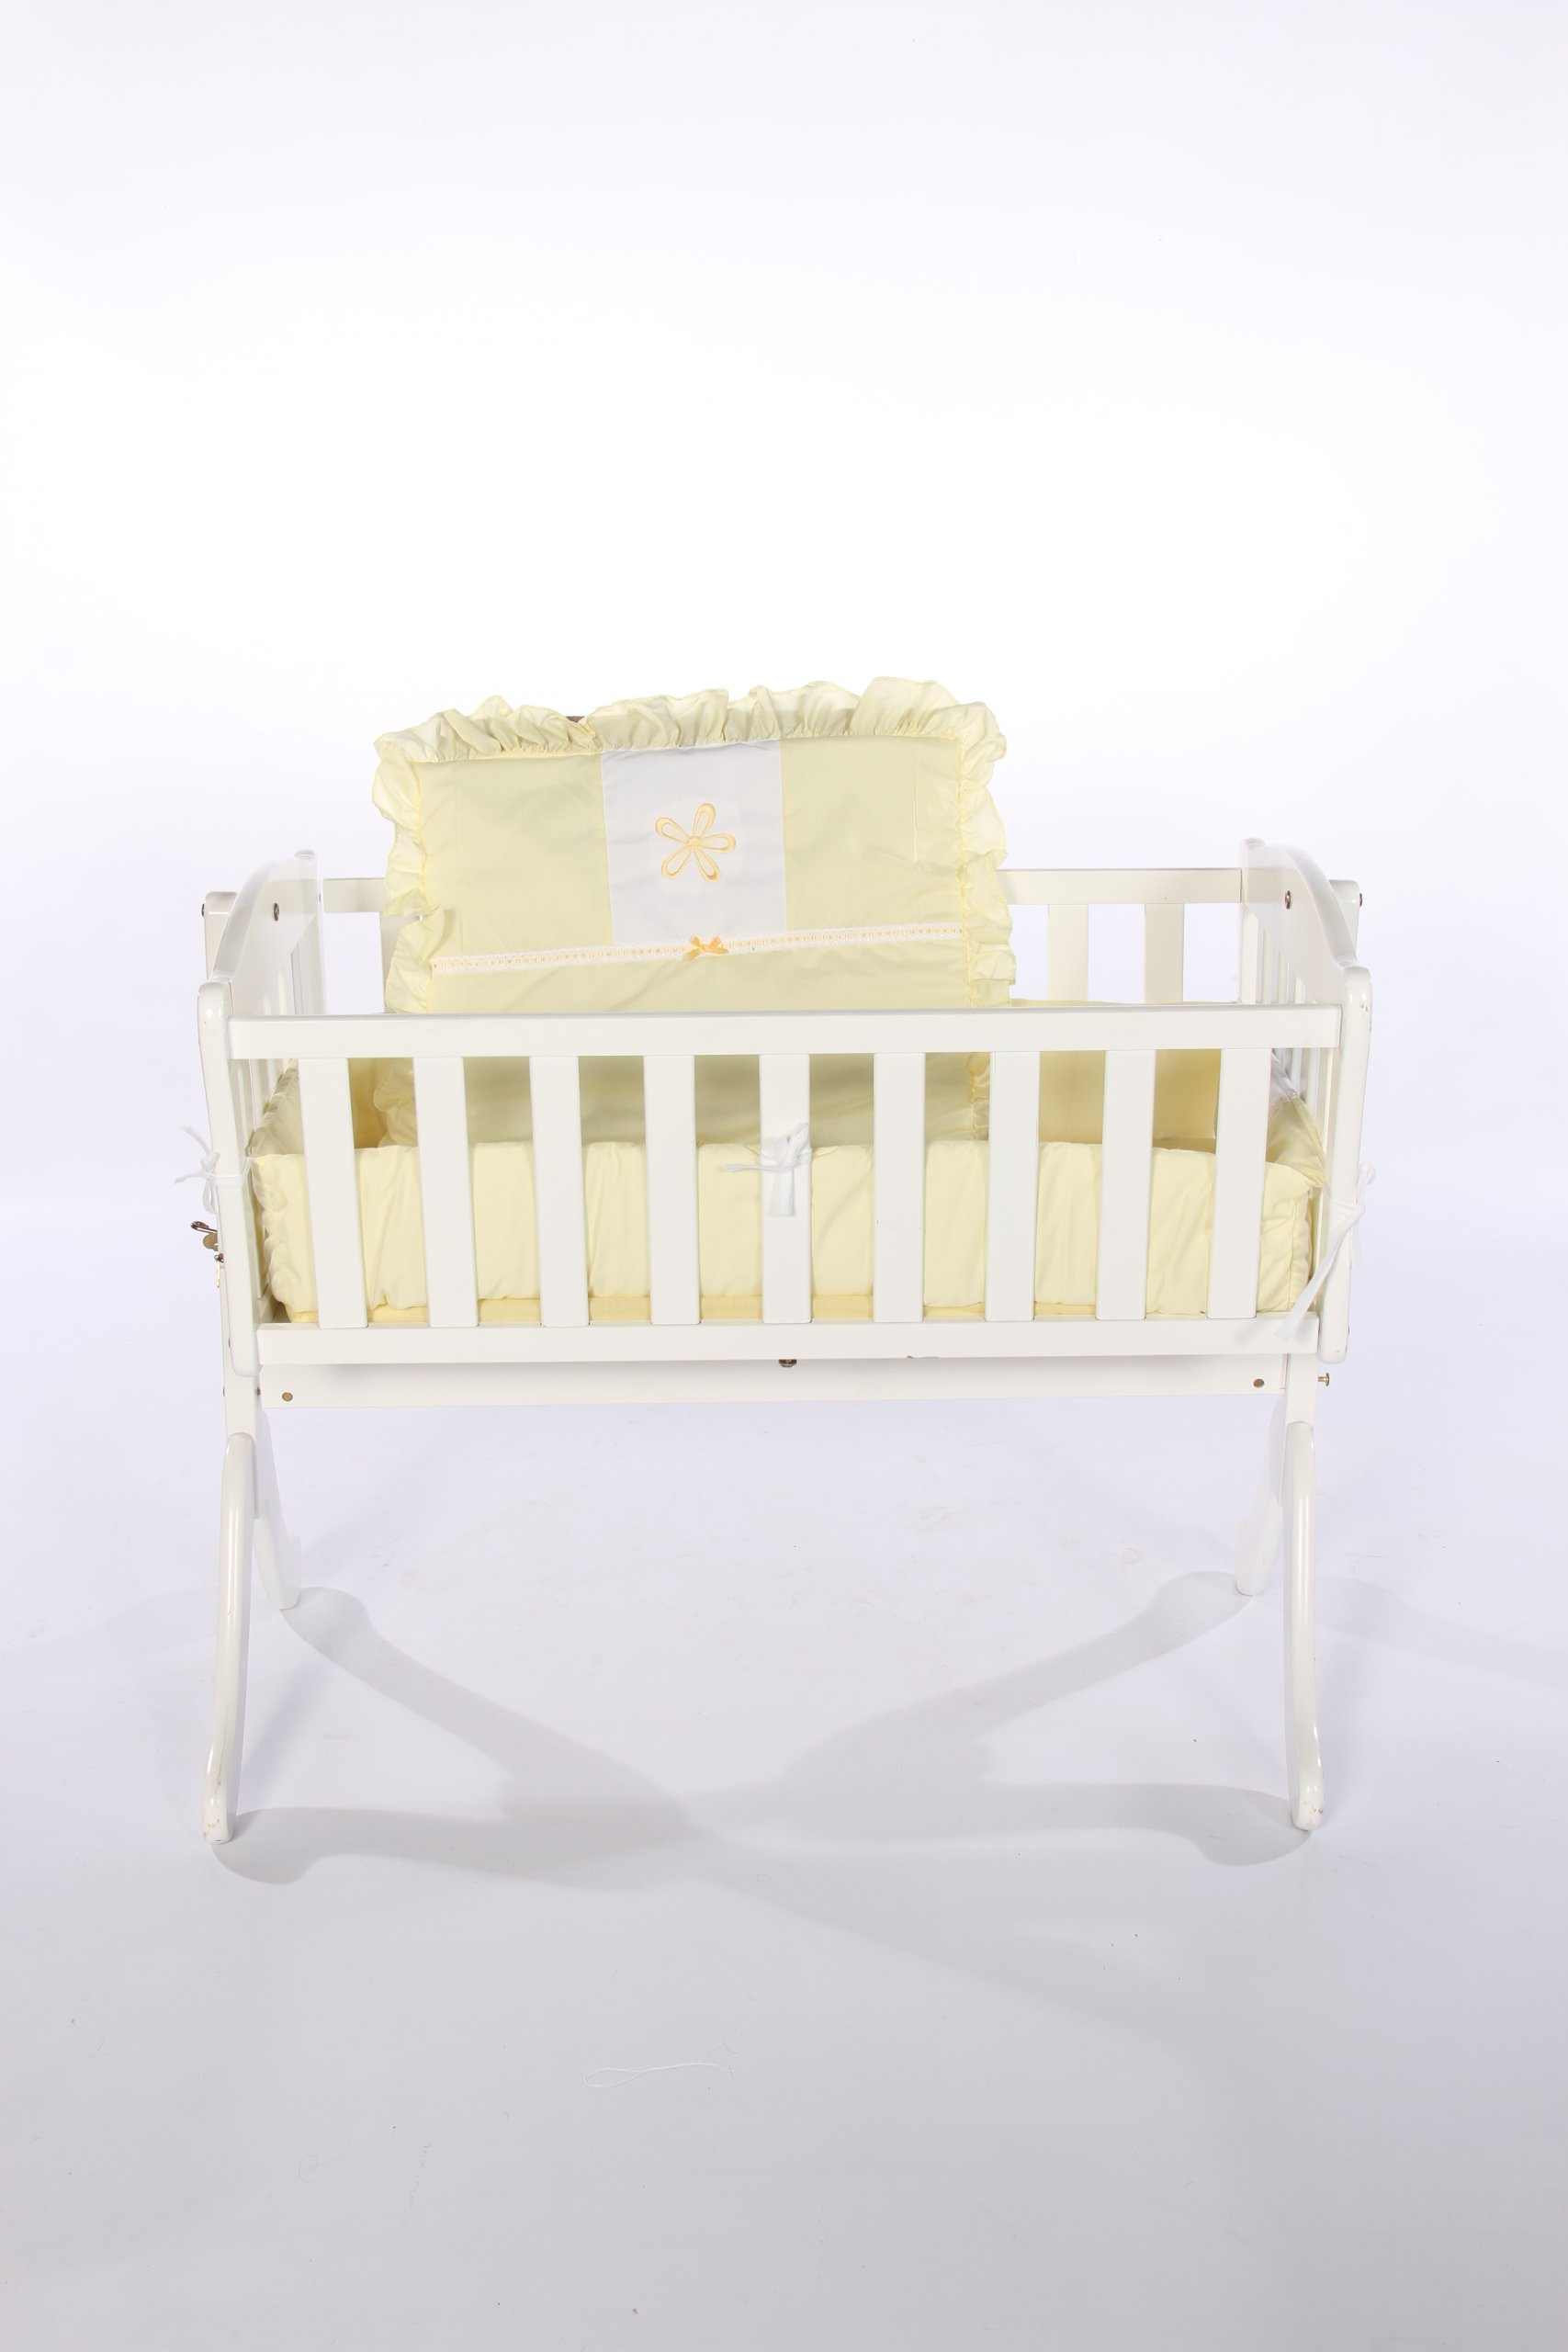 Baby Doll Bedding Solid with Flower Applique Cradle Bedding Set, Yellow